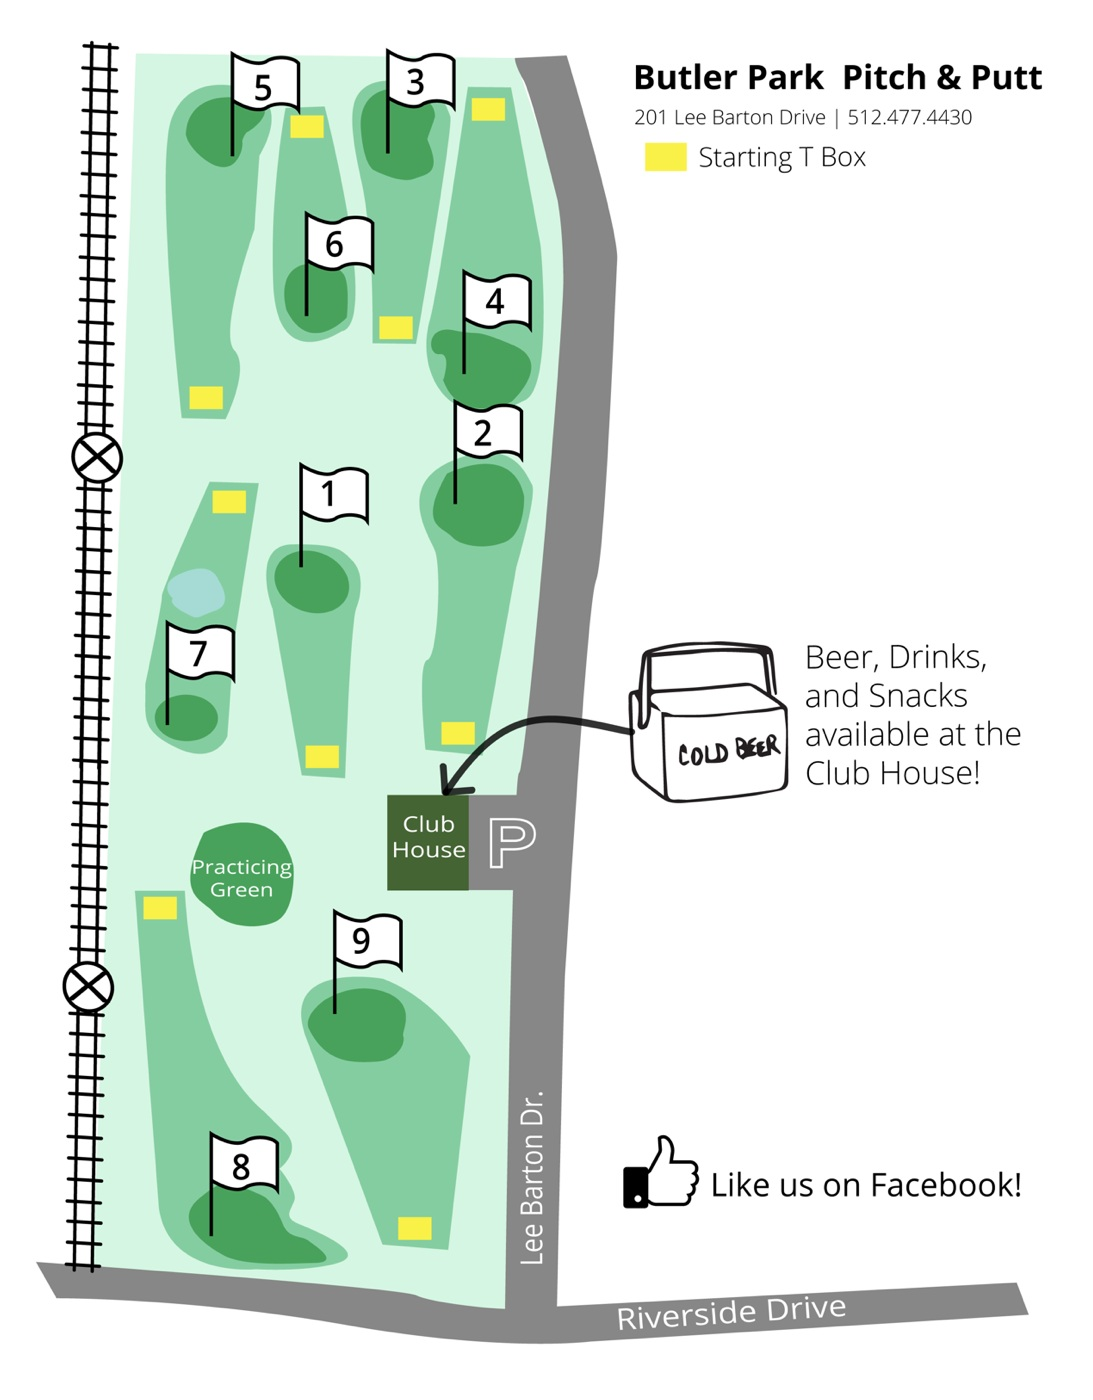 MAP REDESIGN -  Our new map design was created to be easy to read from the clubhouse. Additionally, the owner mentioned the desire to grow their audience on Facebook and sales from refreshments.